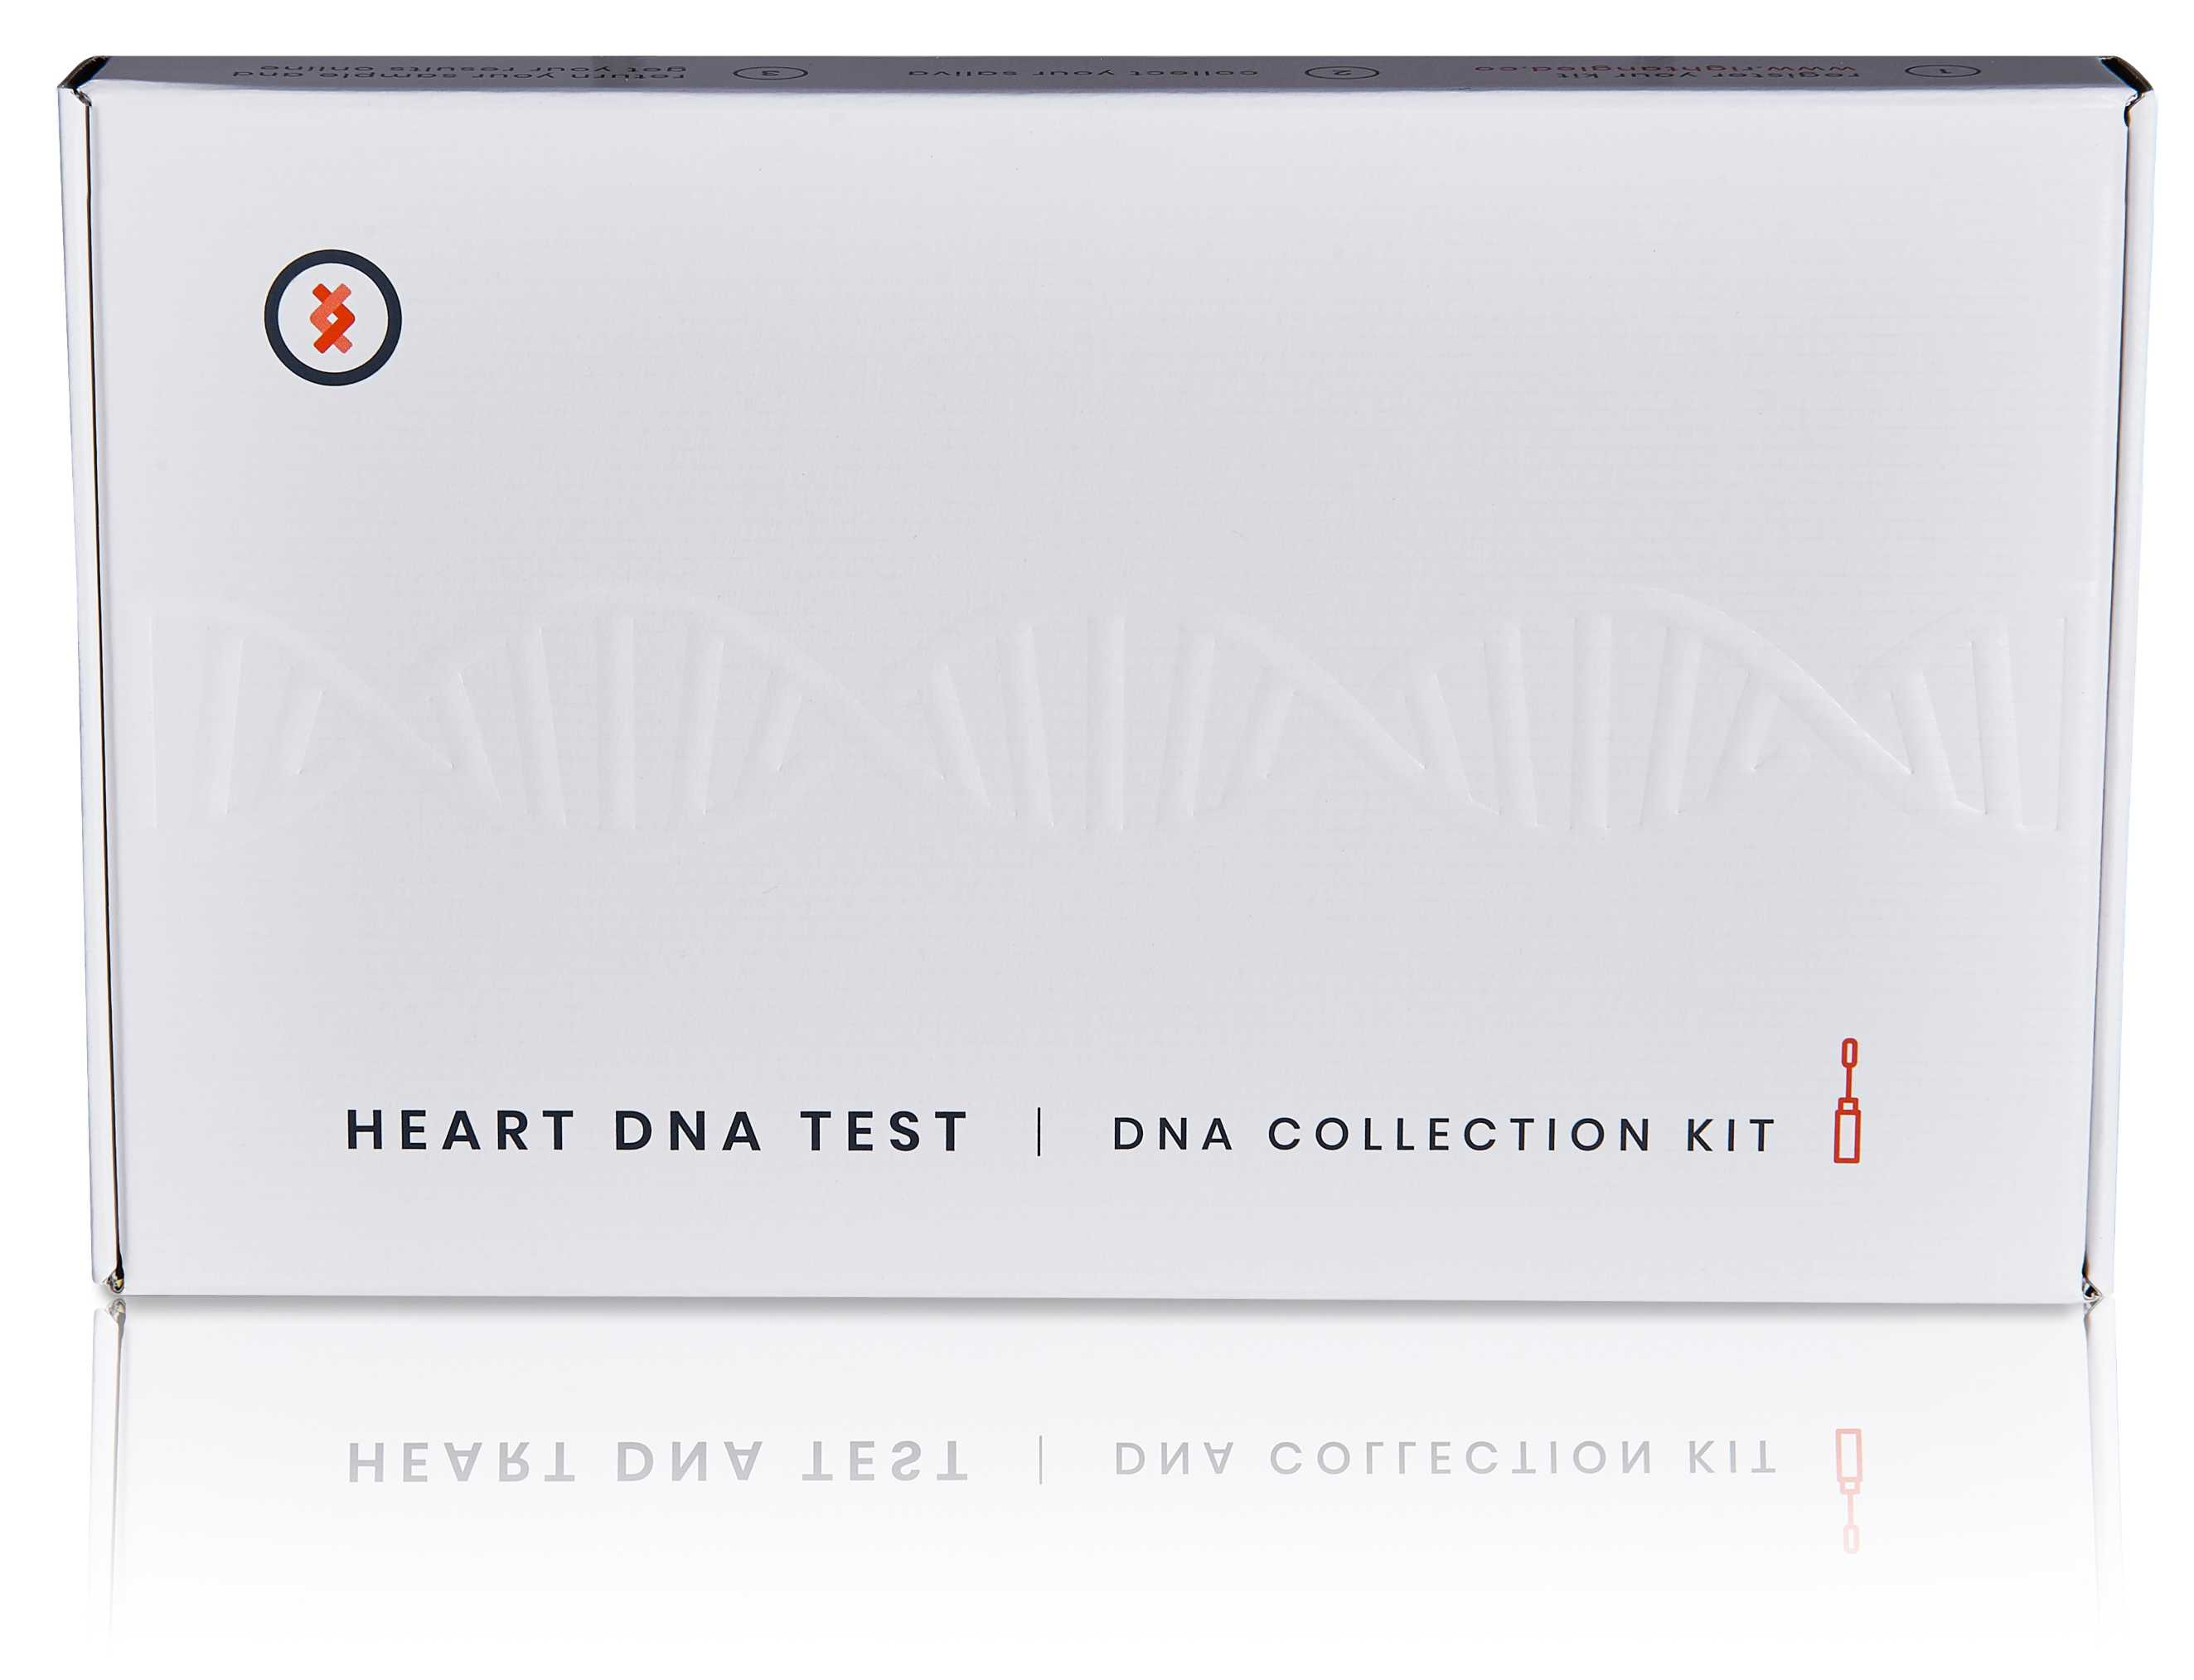 Heart DNA test kit